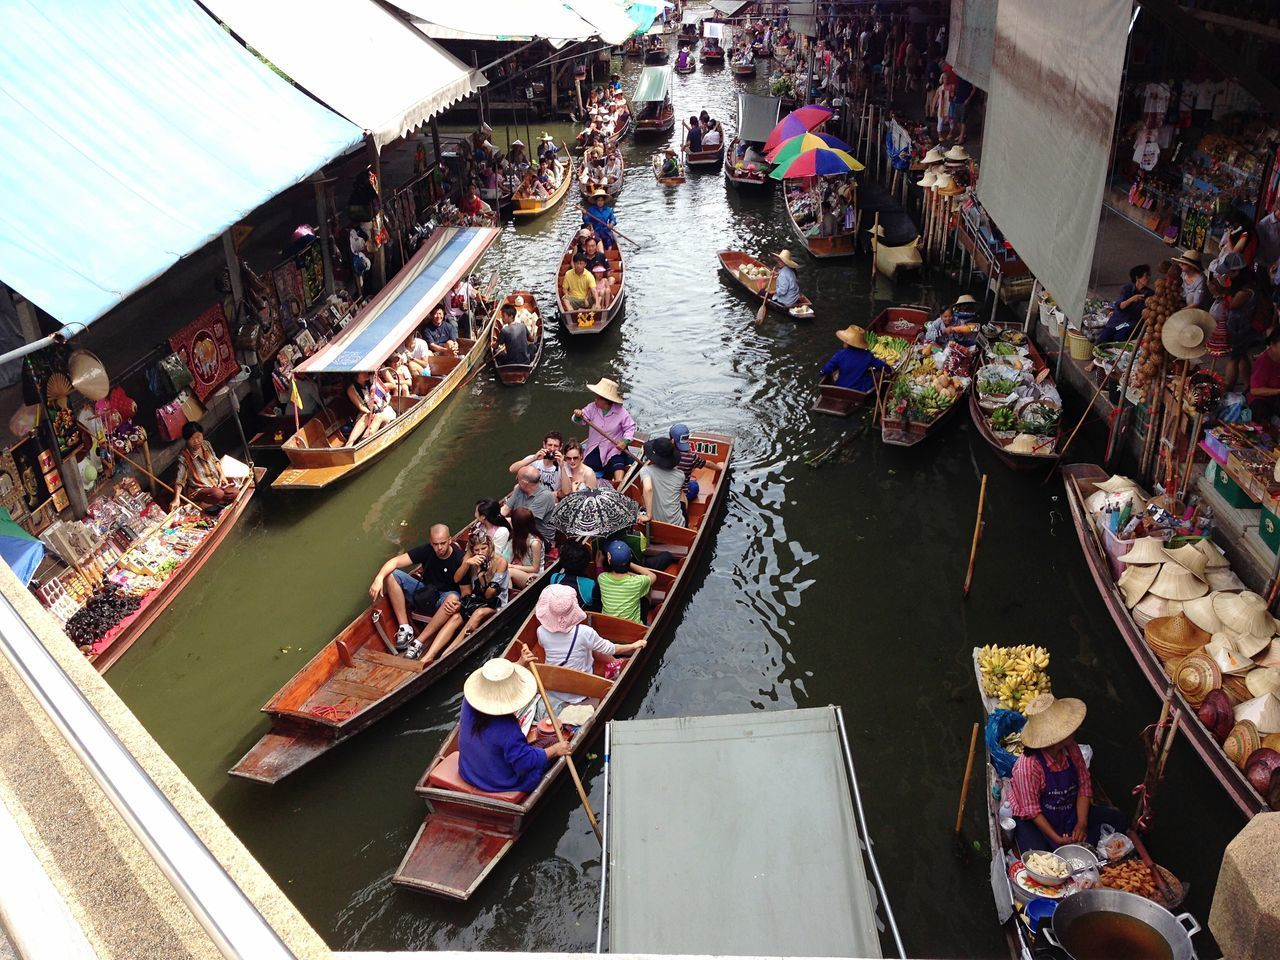 HIGH ANGLE VIEW OF PEOPLE ON BOATS AT MARKET